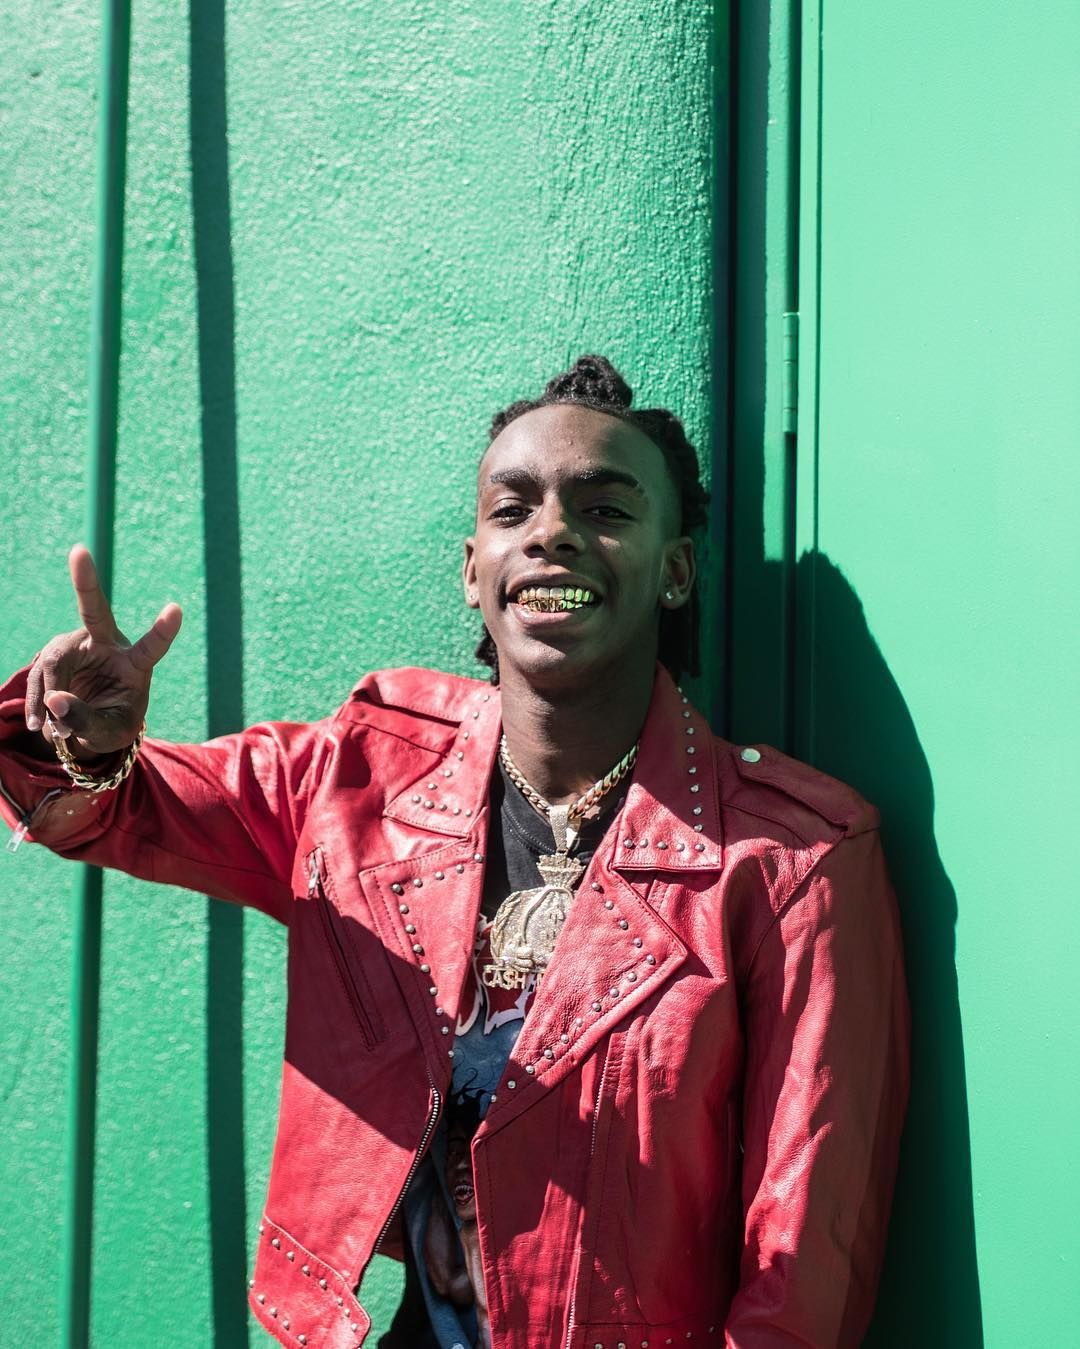 YNW Melly Rappers Baby daddy, Love, basketball, Rapper